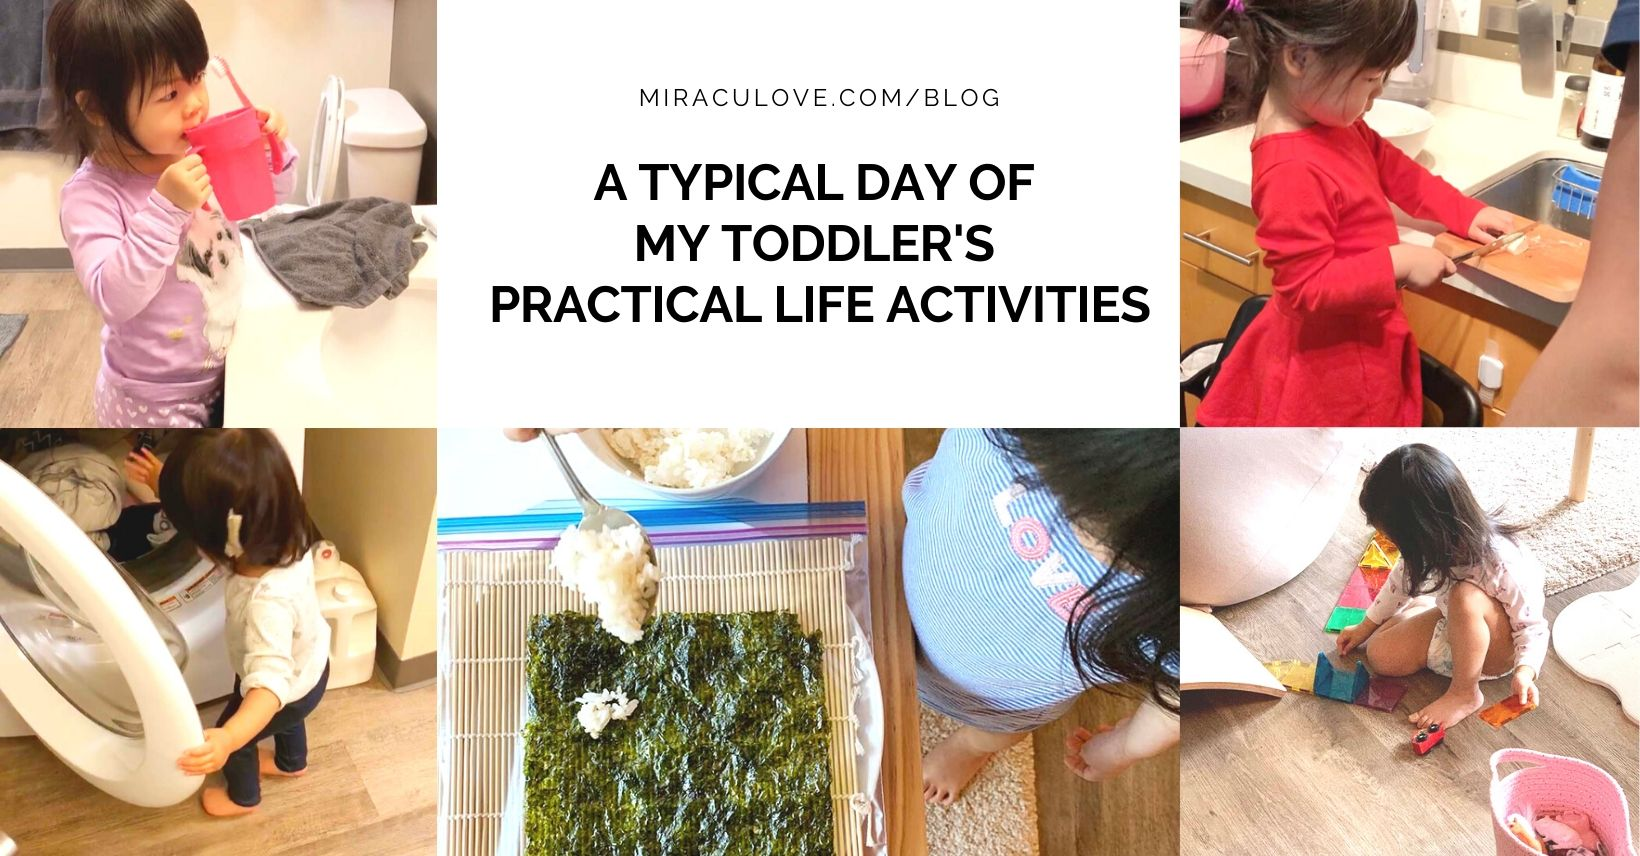 A Typical Day of My Toddler's Practical Life Activities